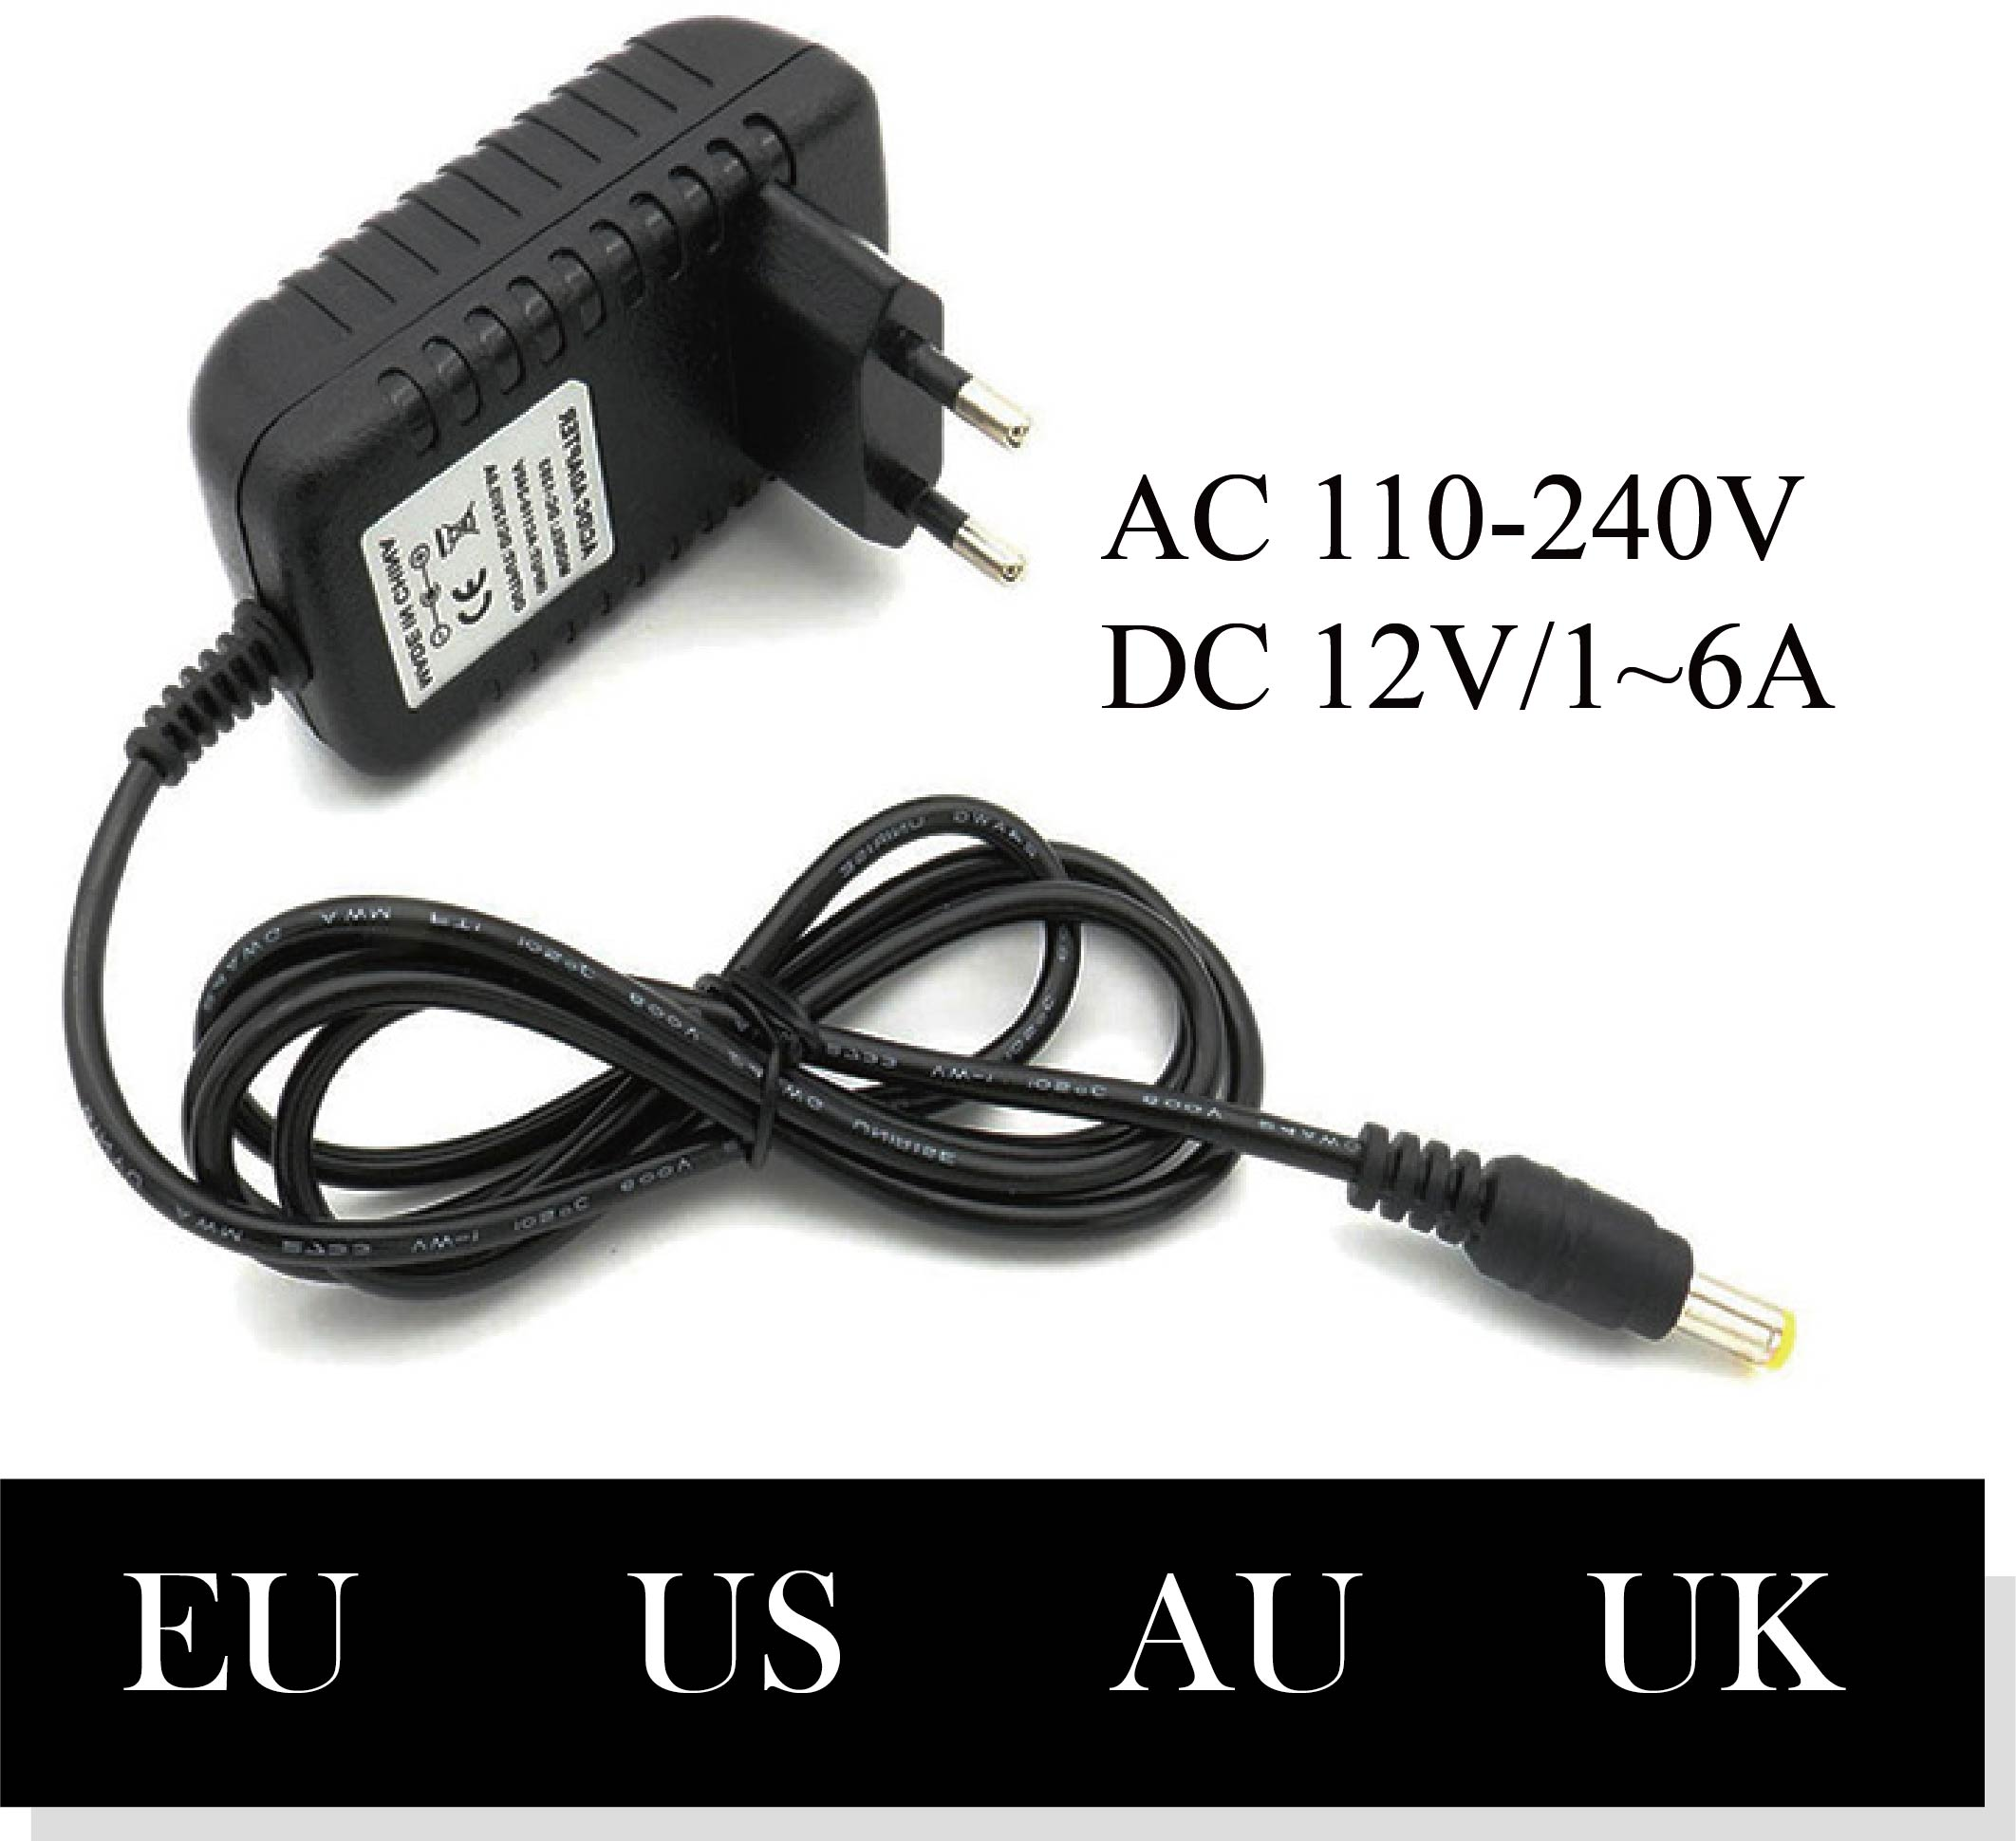 718/5000 110-240V 12V 1A 2A 3A 4A 5A 6A AC To DC Adapter Universal Power Adapter Charger LED Light Strip Plug